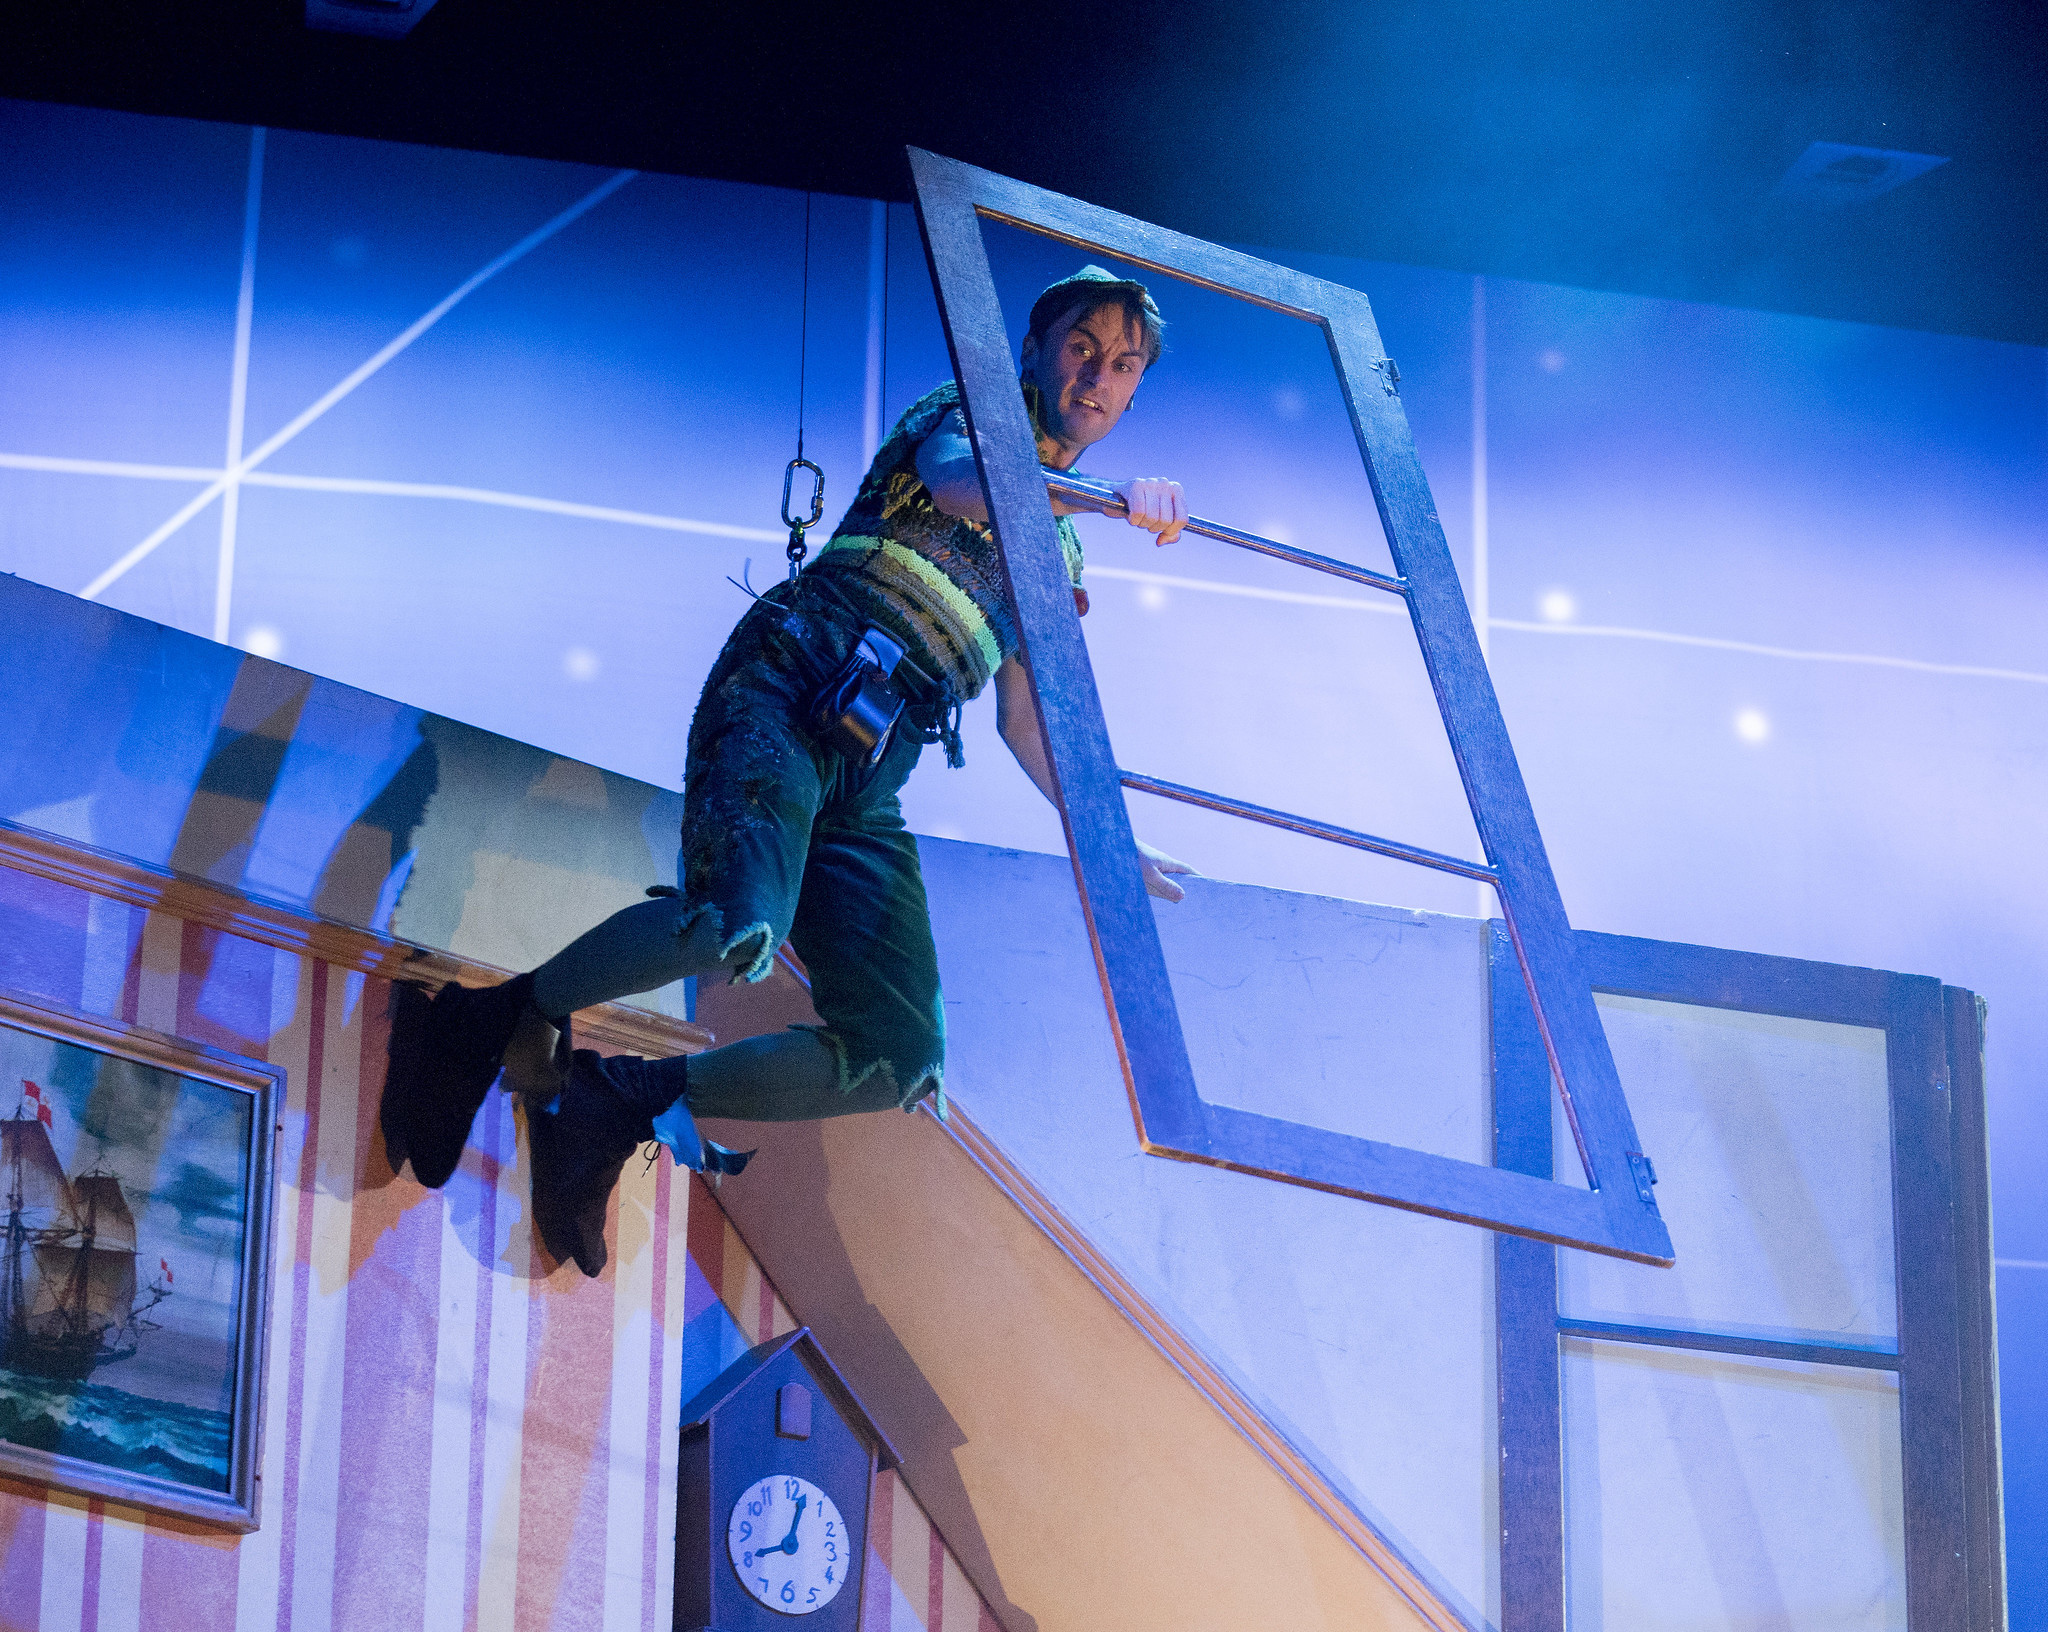 REVIEW: Peter Pan Goes Wrong was a festive farce full of giggles